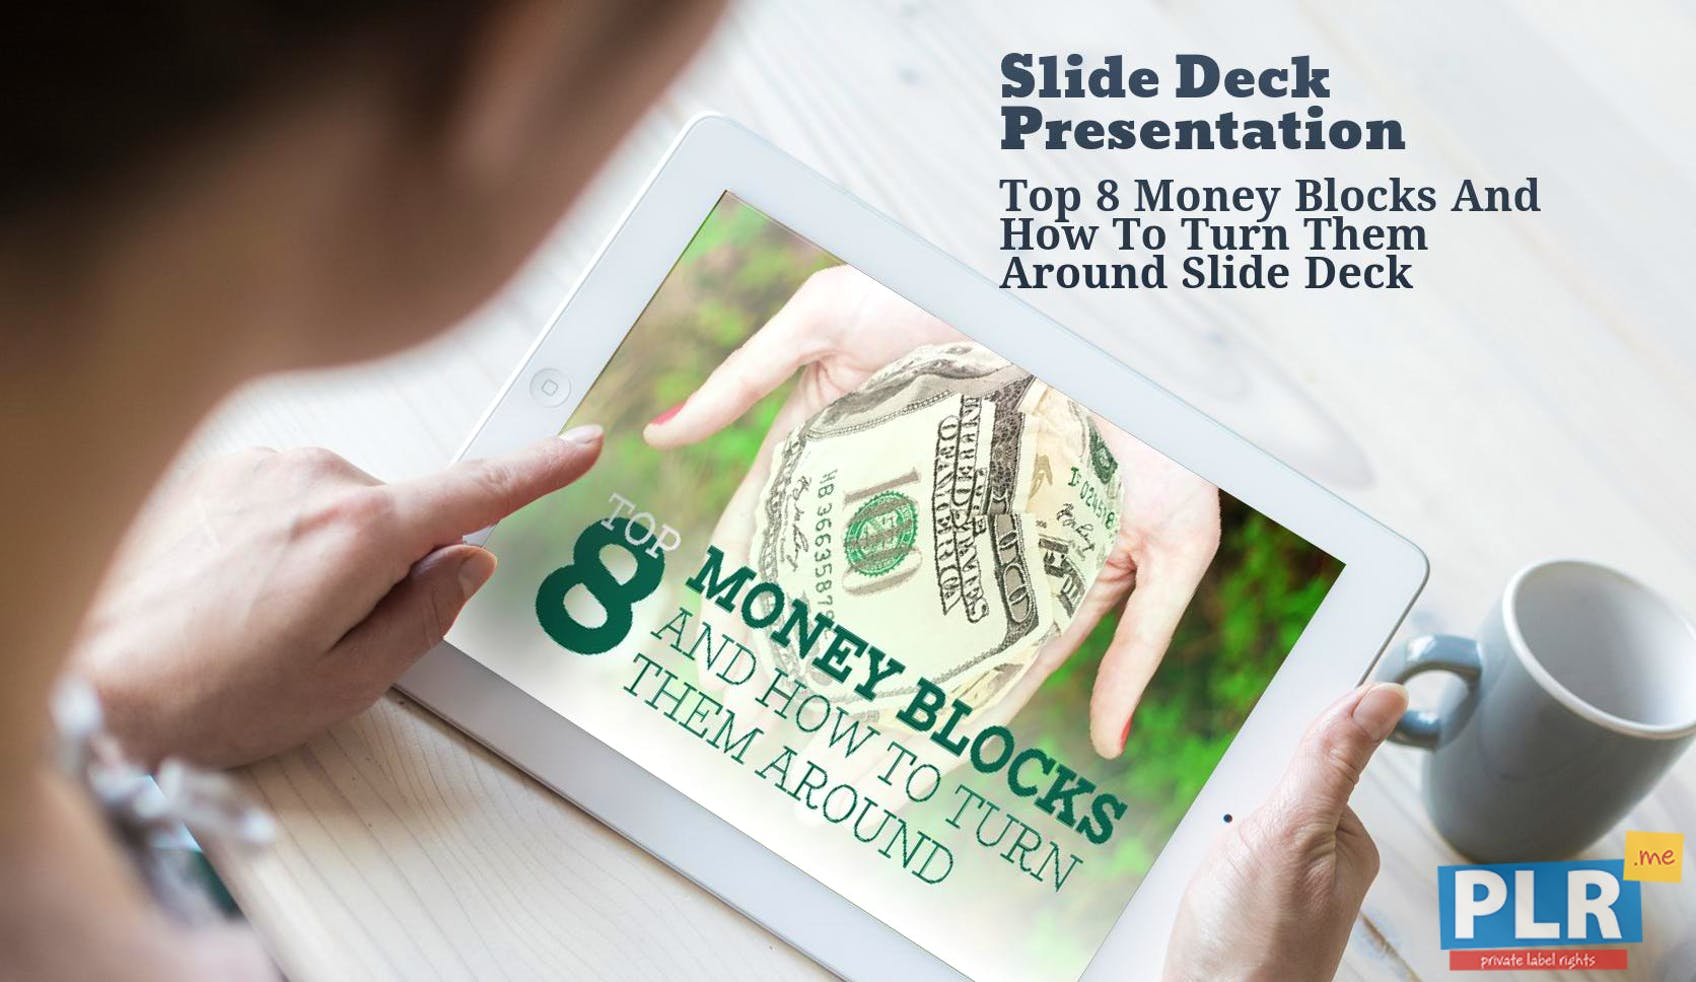 Top 8 Money Blocks And How To Turn Them Around Slide Deck